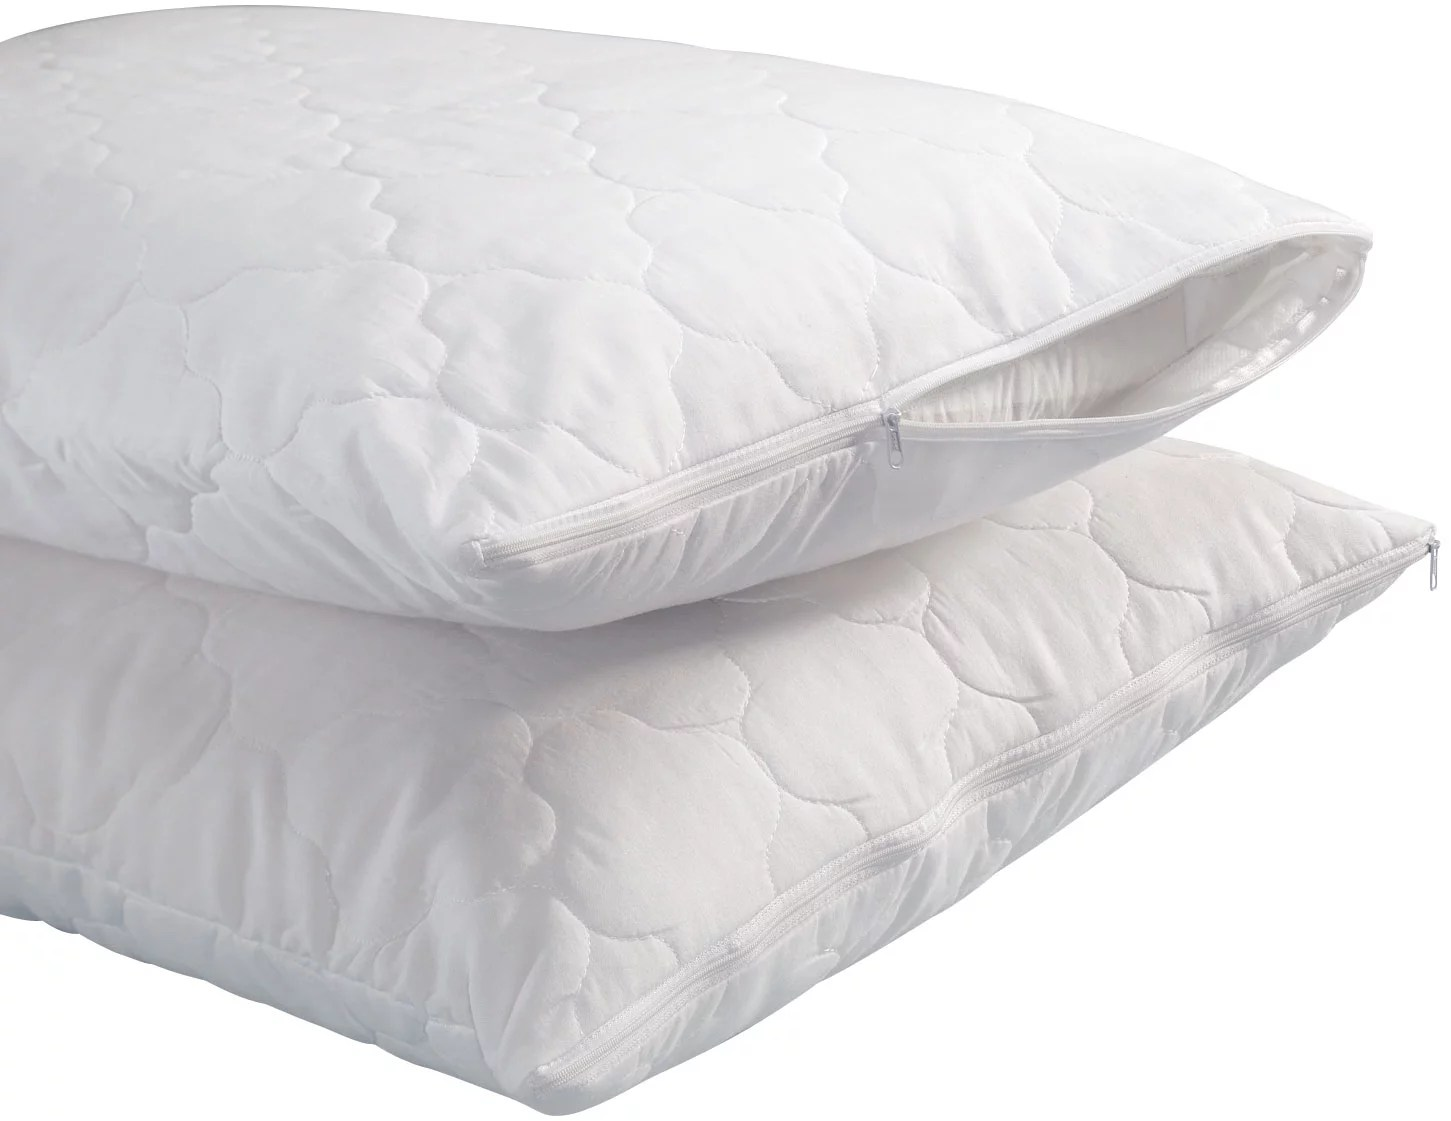 quilted pillow covers set 2